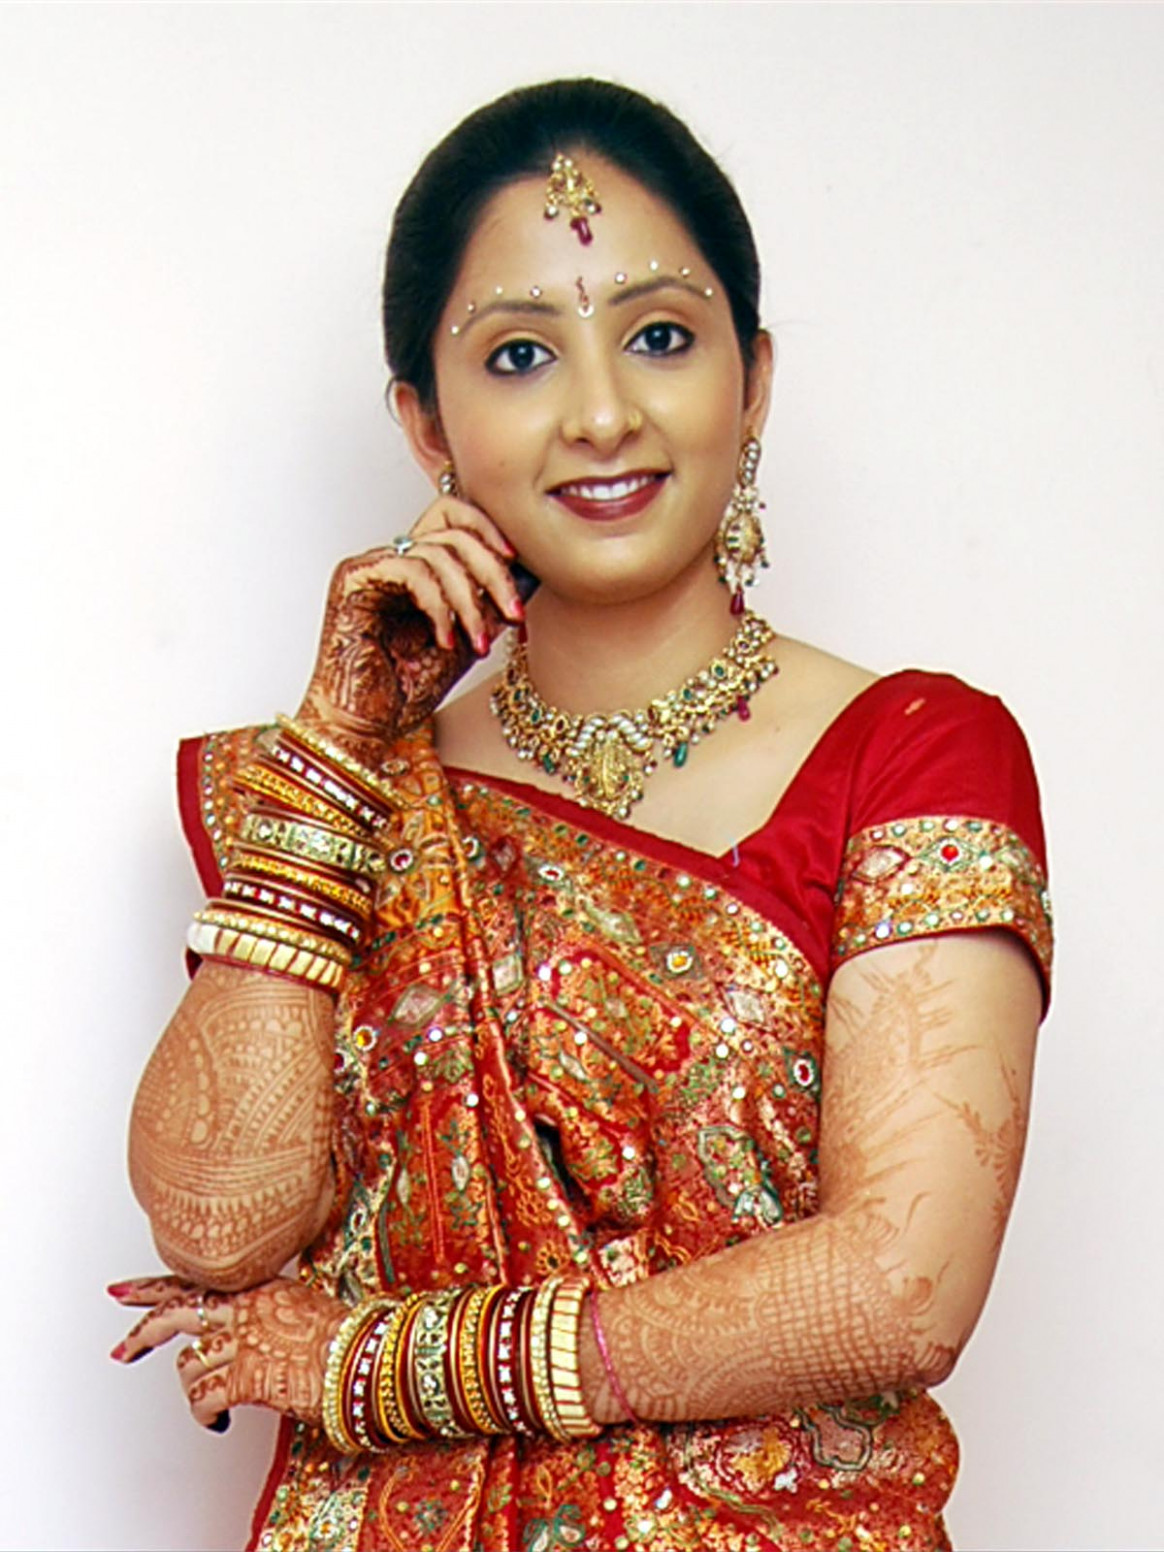 Wedding Dresses Games Indian Brides - Bridesmaid Dresses